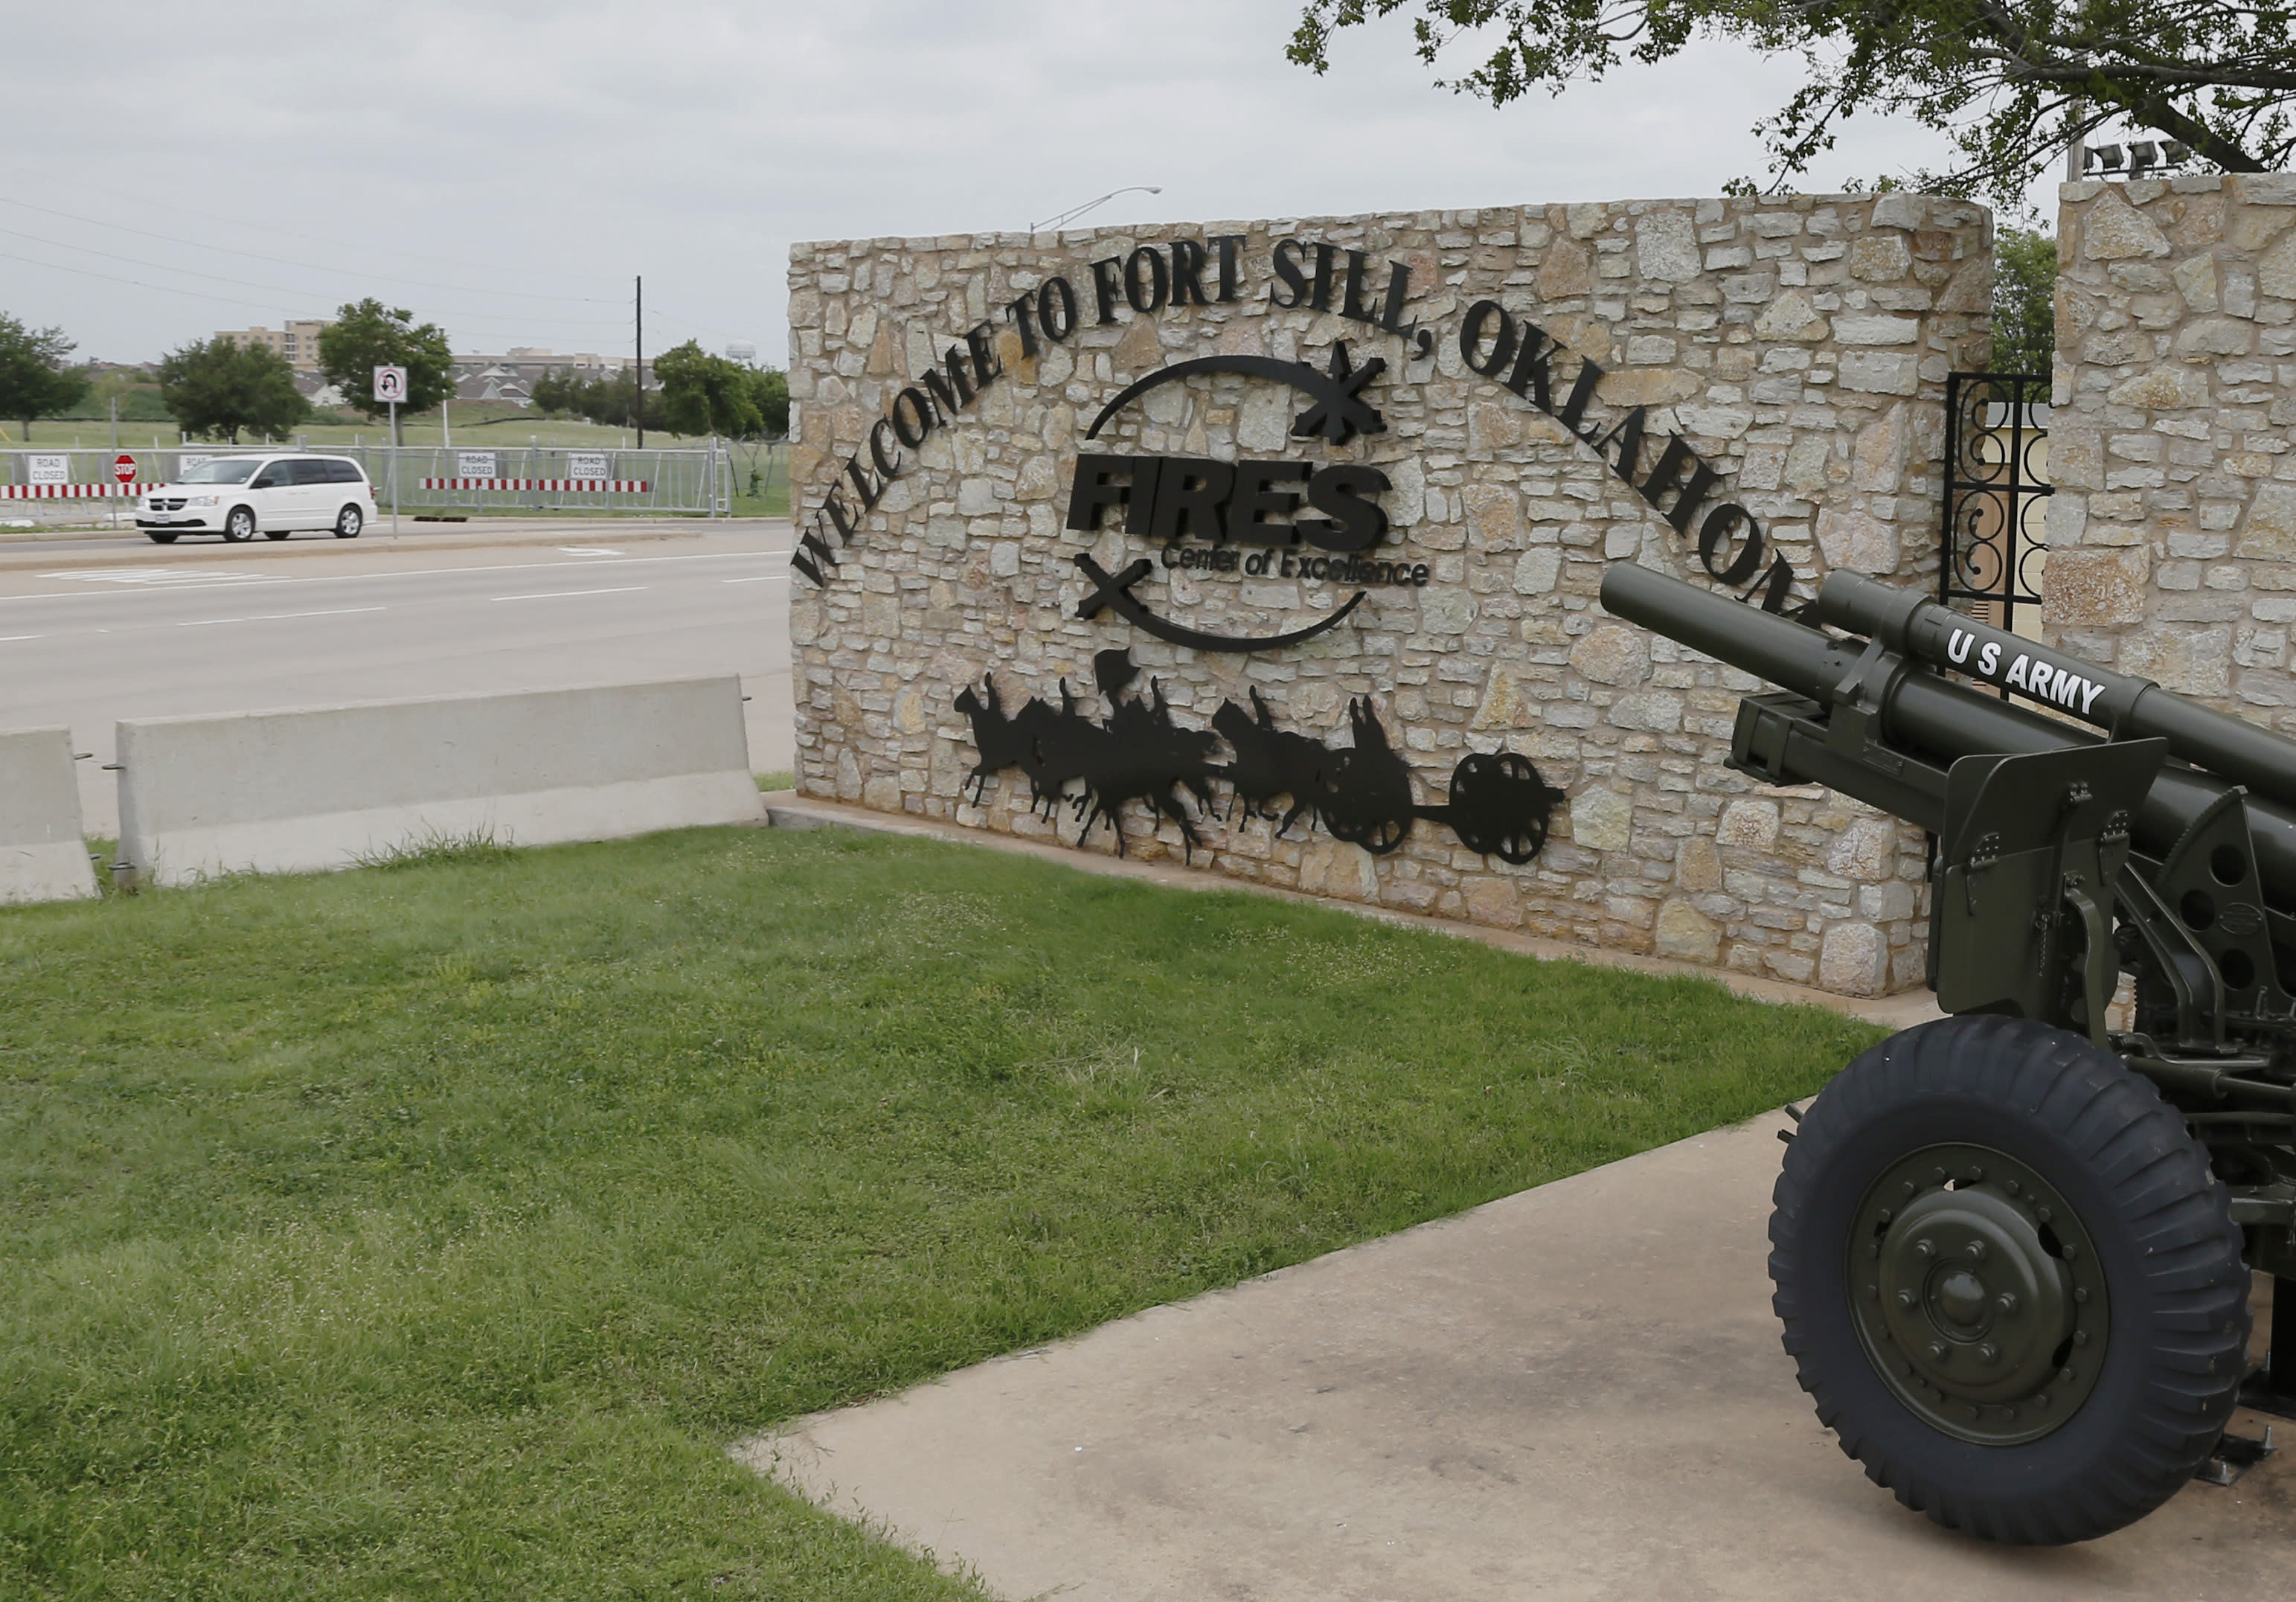 Oklahoma base set for migrant site was WWII internment camp